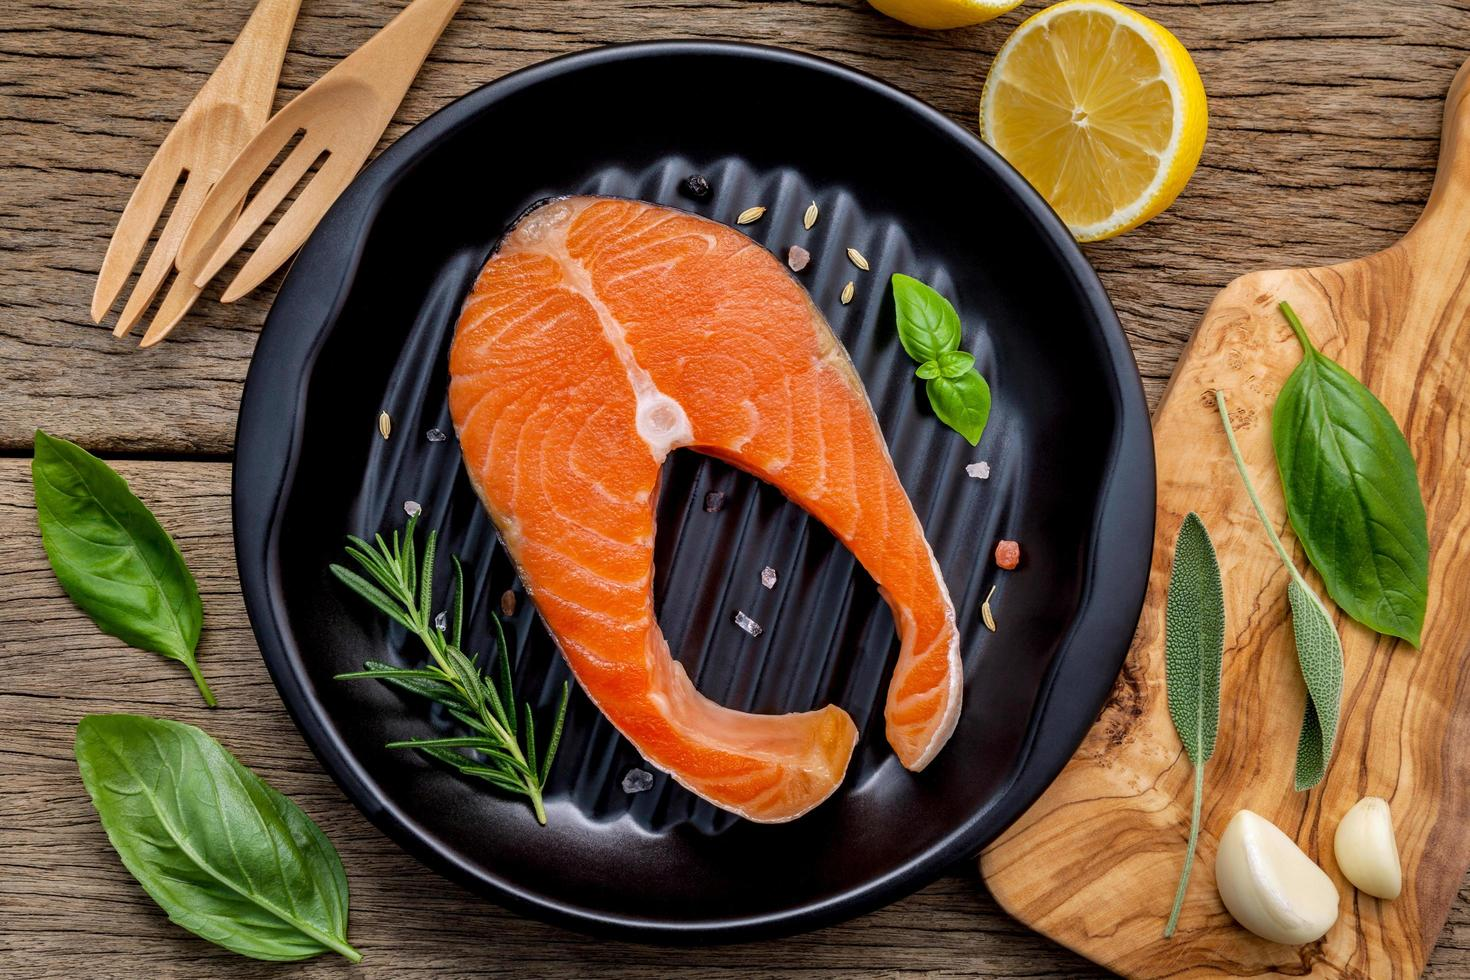 Top view of salmon in a skillet photo